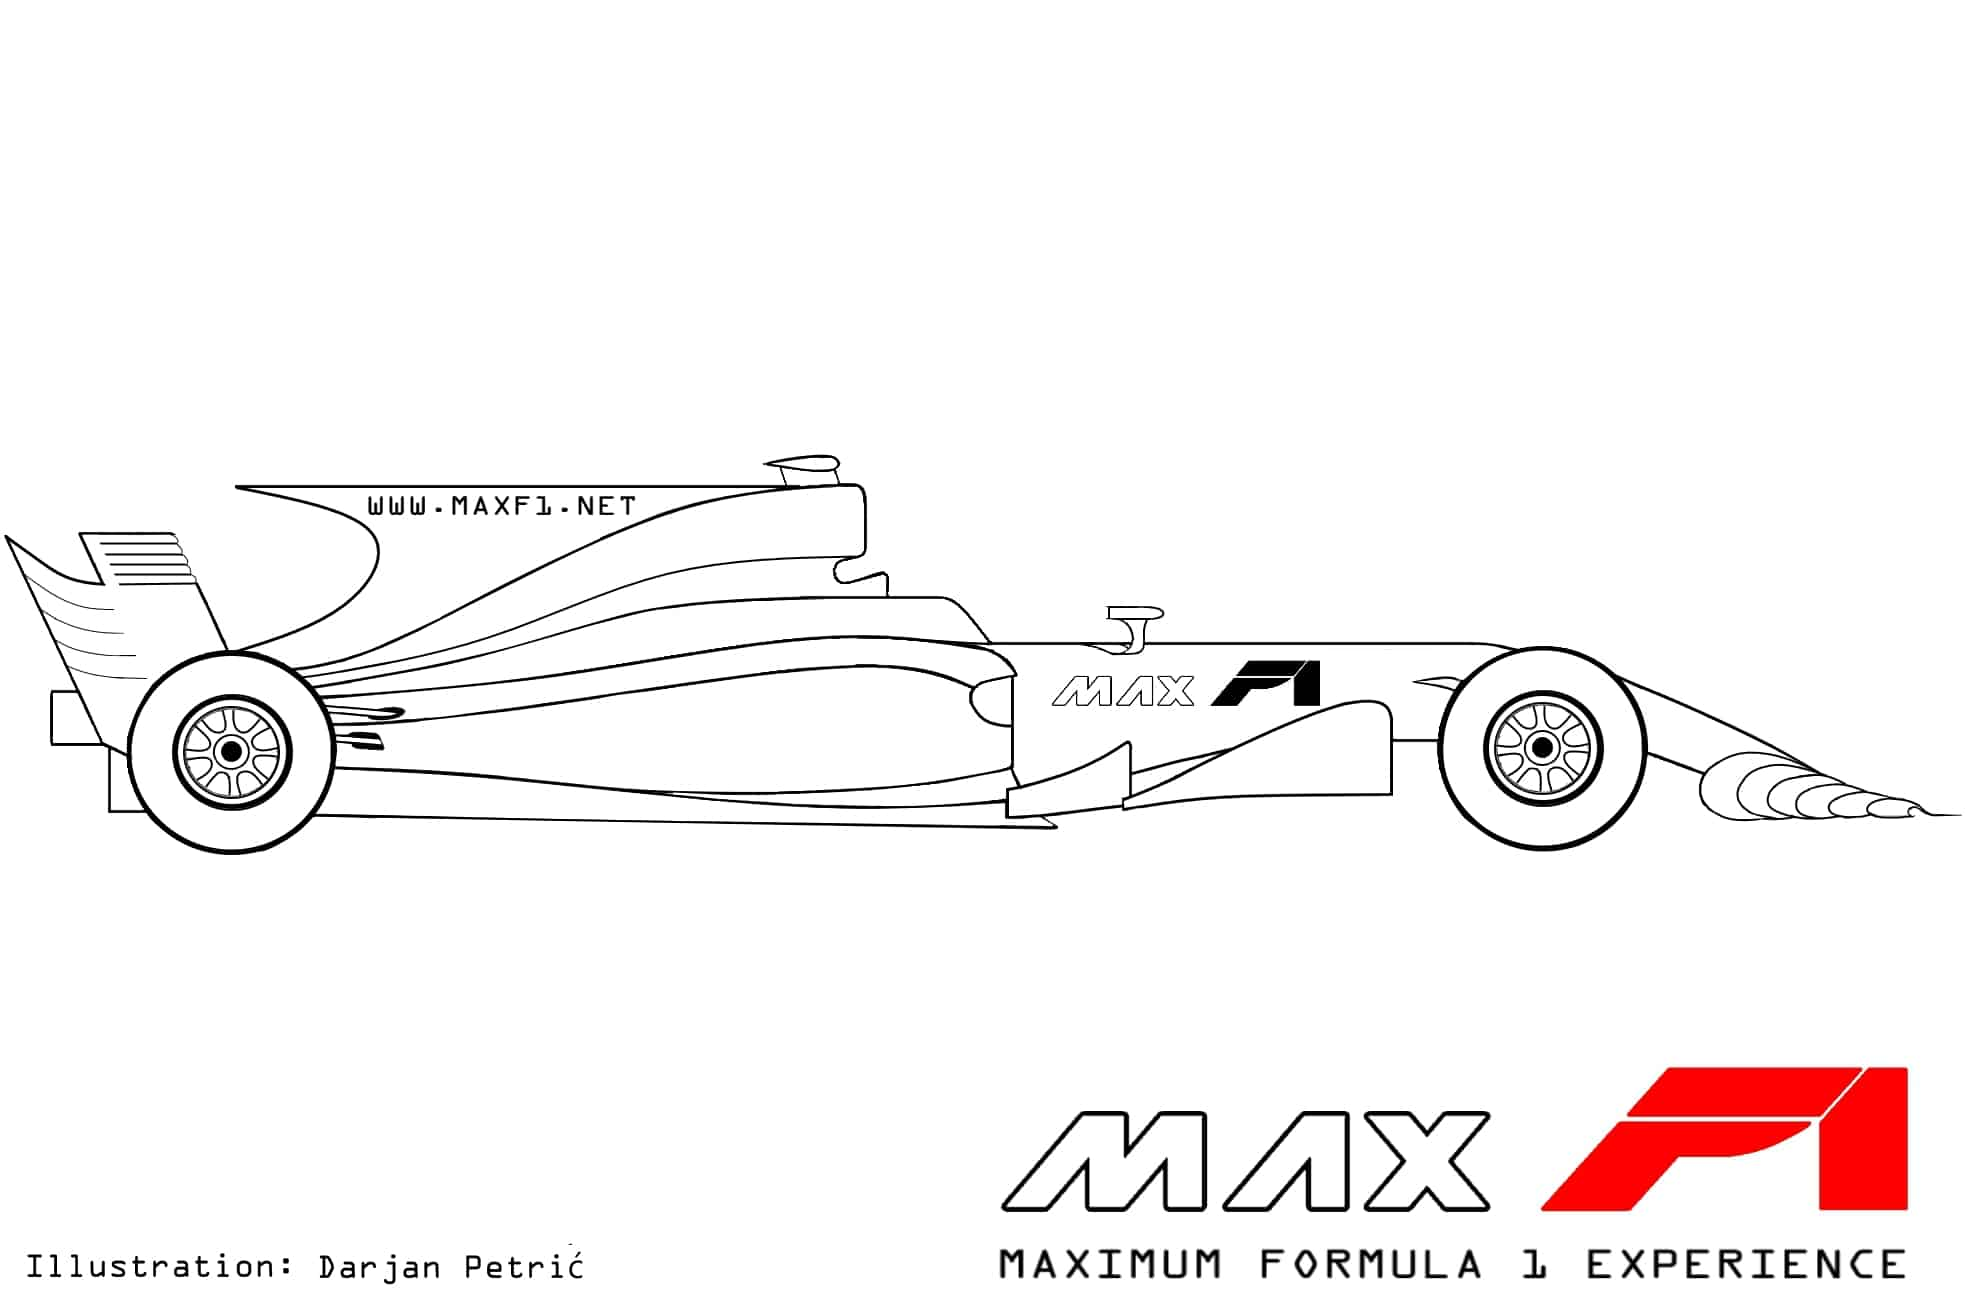 hight resolution of formula 1 2017 car side technical drawing by darjan petric maxf1 net eng red